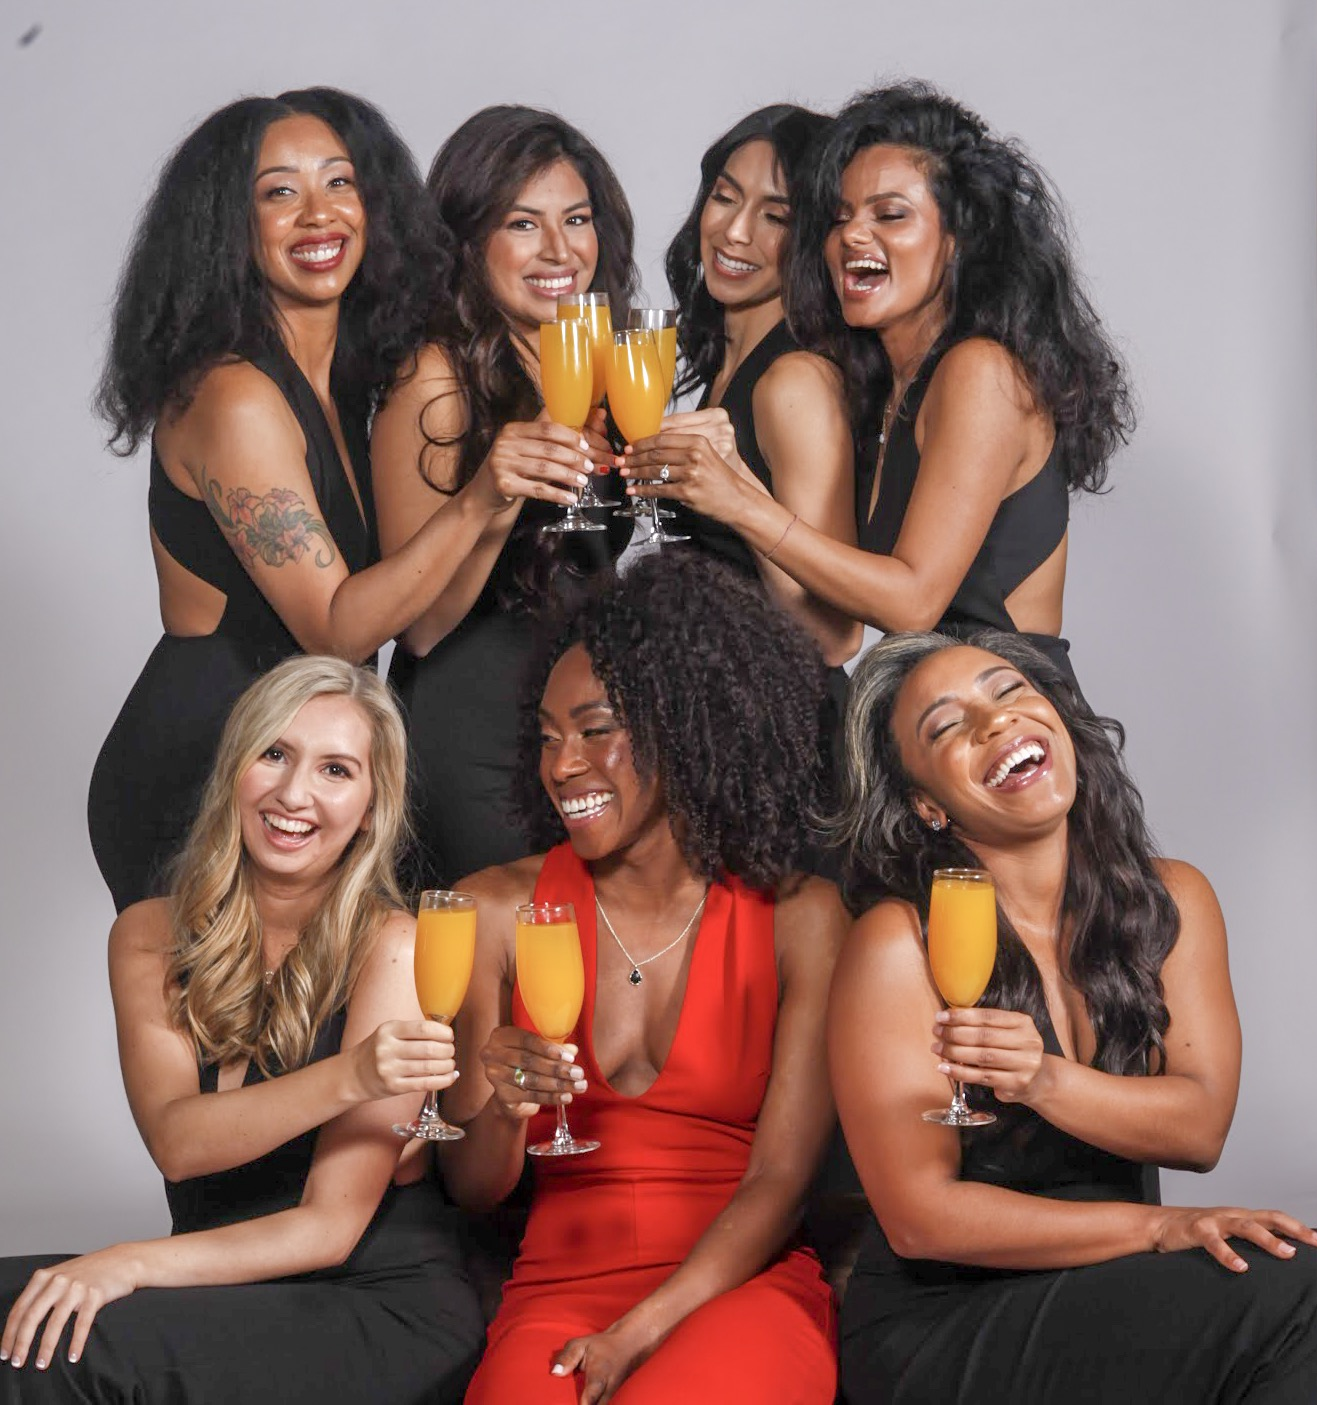 The Socialites - Women Supporting Women.The Socialites are the Money & Mimosas brand ambassador team. We help brands that align with our mission to get their message out in a big way.About us: we are a community of ambitious, sophisticated women who believe in living life to the fullest and genuinely supporting other women's dreams.As ambassadors, The Socialites promote women-owned businesses and volunteer at events that build confidence in young girls.